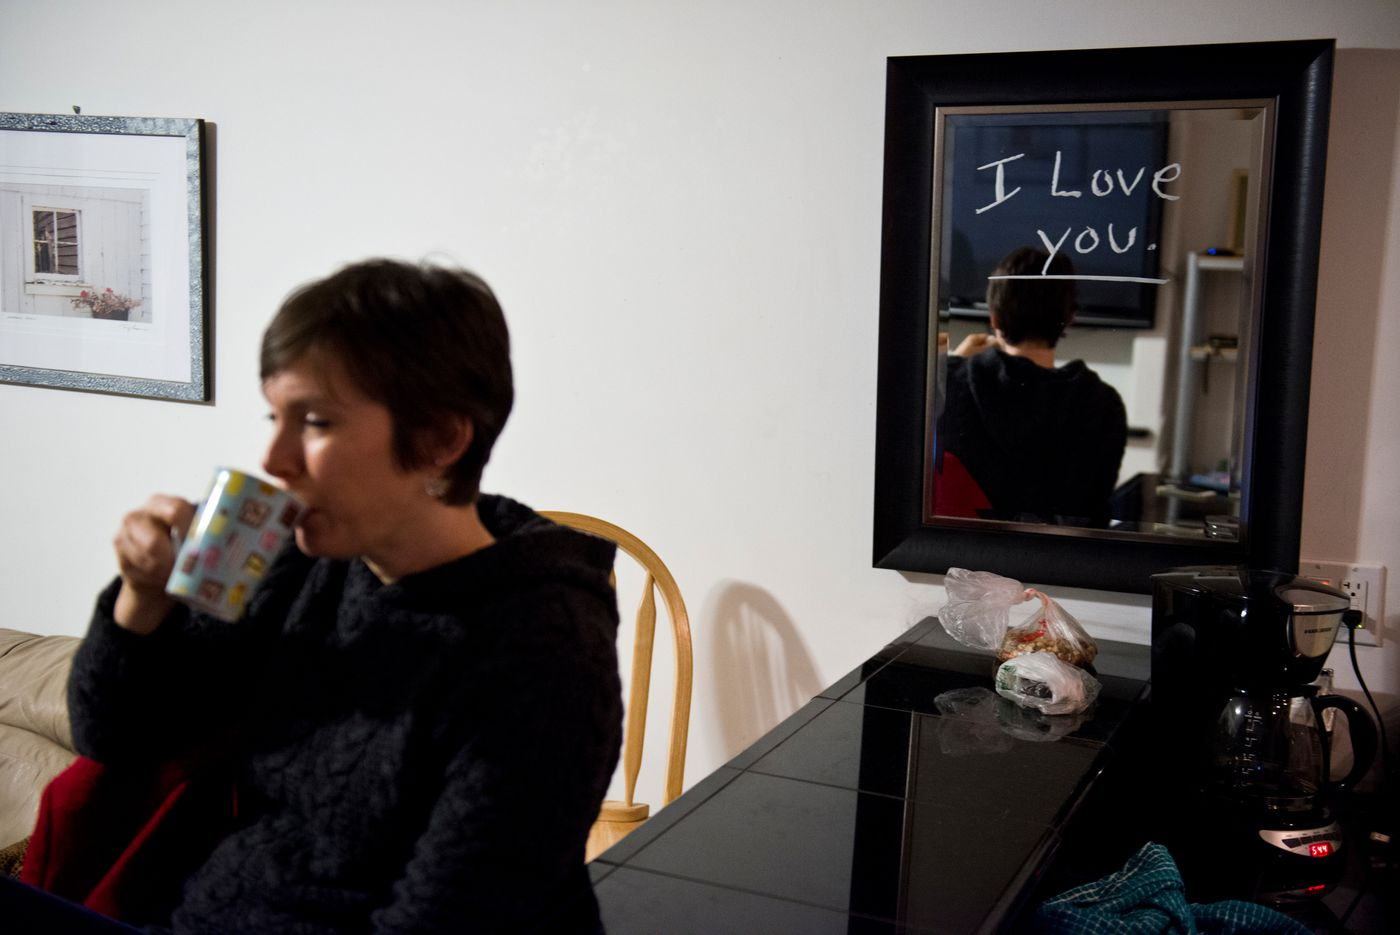 Rep. Ivy Spohnholz rents an apartment across the bridge from Juneau in the town of Douglas. The Anchorage representative's family stays in Anchorage while she's in Juneau, but her husband left her a message on the mirror during a recent visit. (Marc Lester / Alaska Dispatch News)